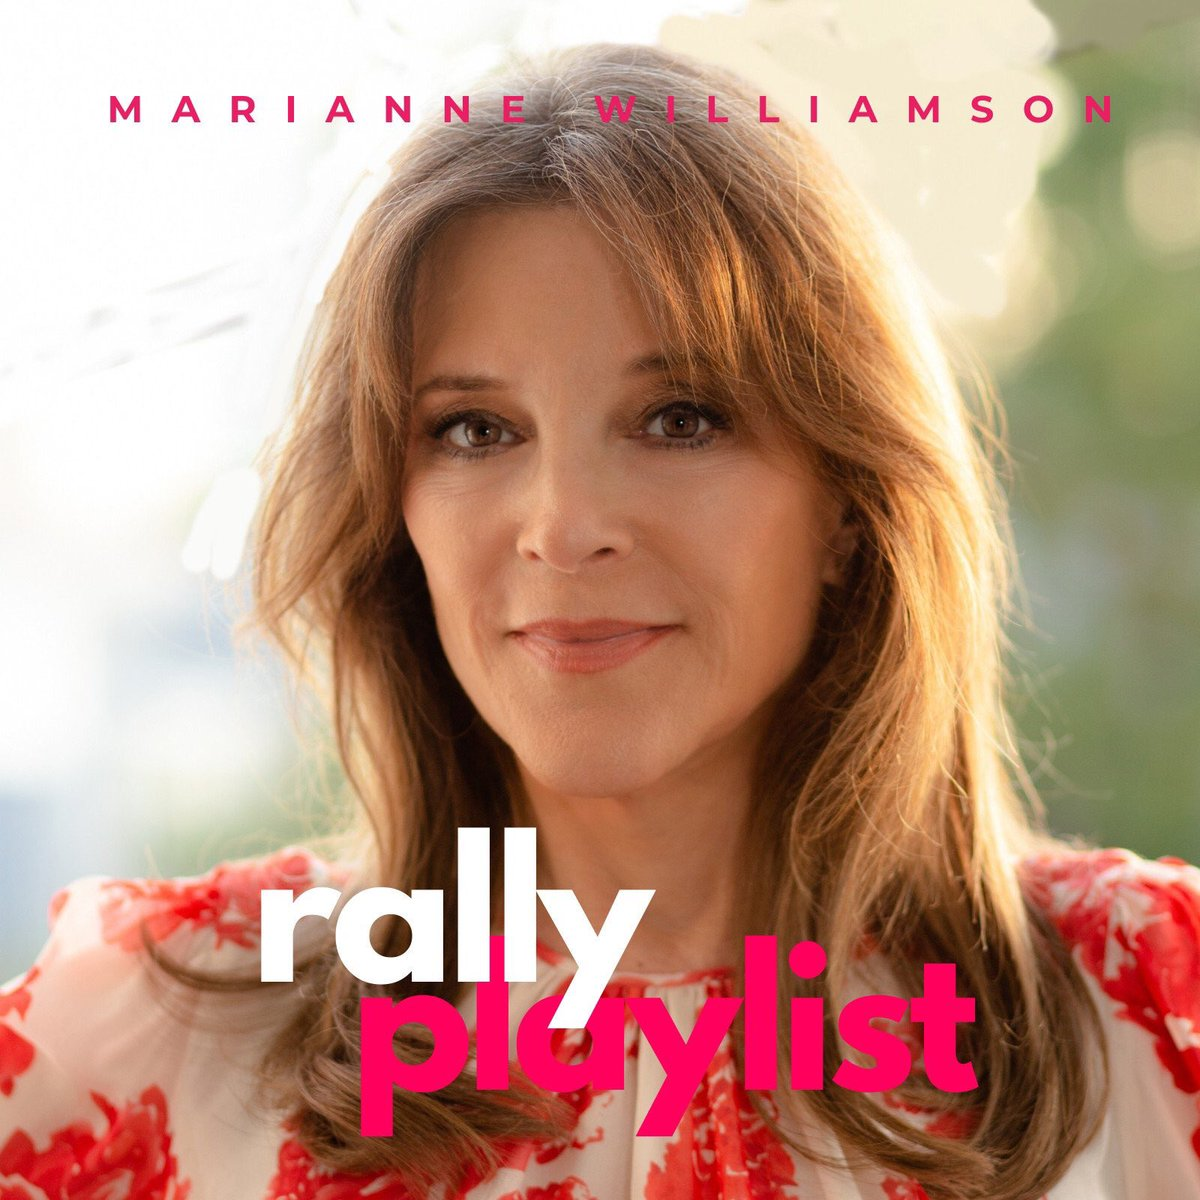 The OFFICIAL Marianne Williamson Rally playlist has been uploaded to Spotify <br>http://pic.twitter.com/LR1OZy7lAH